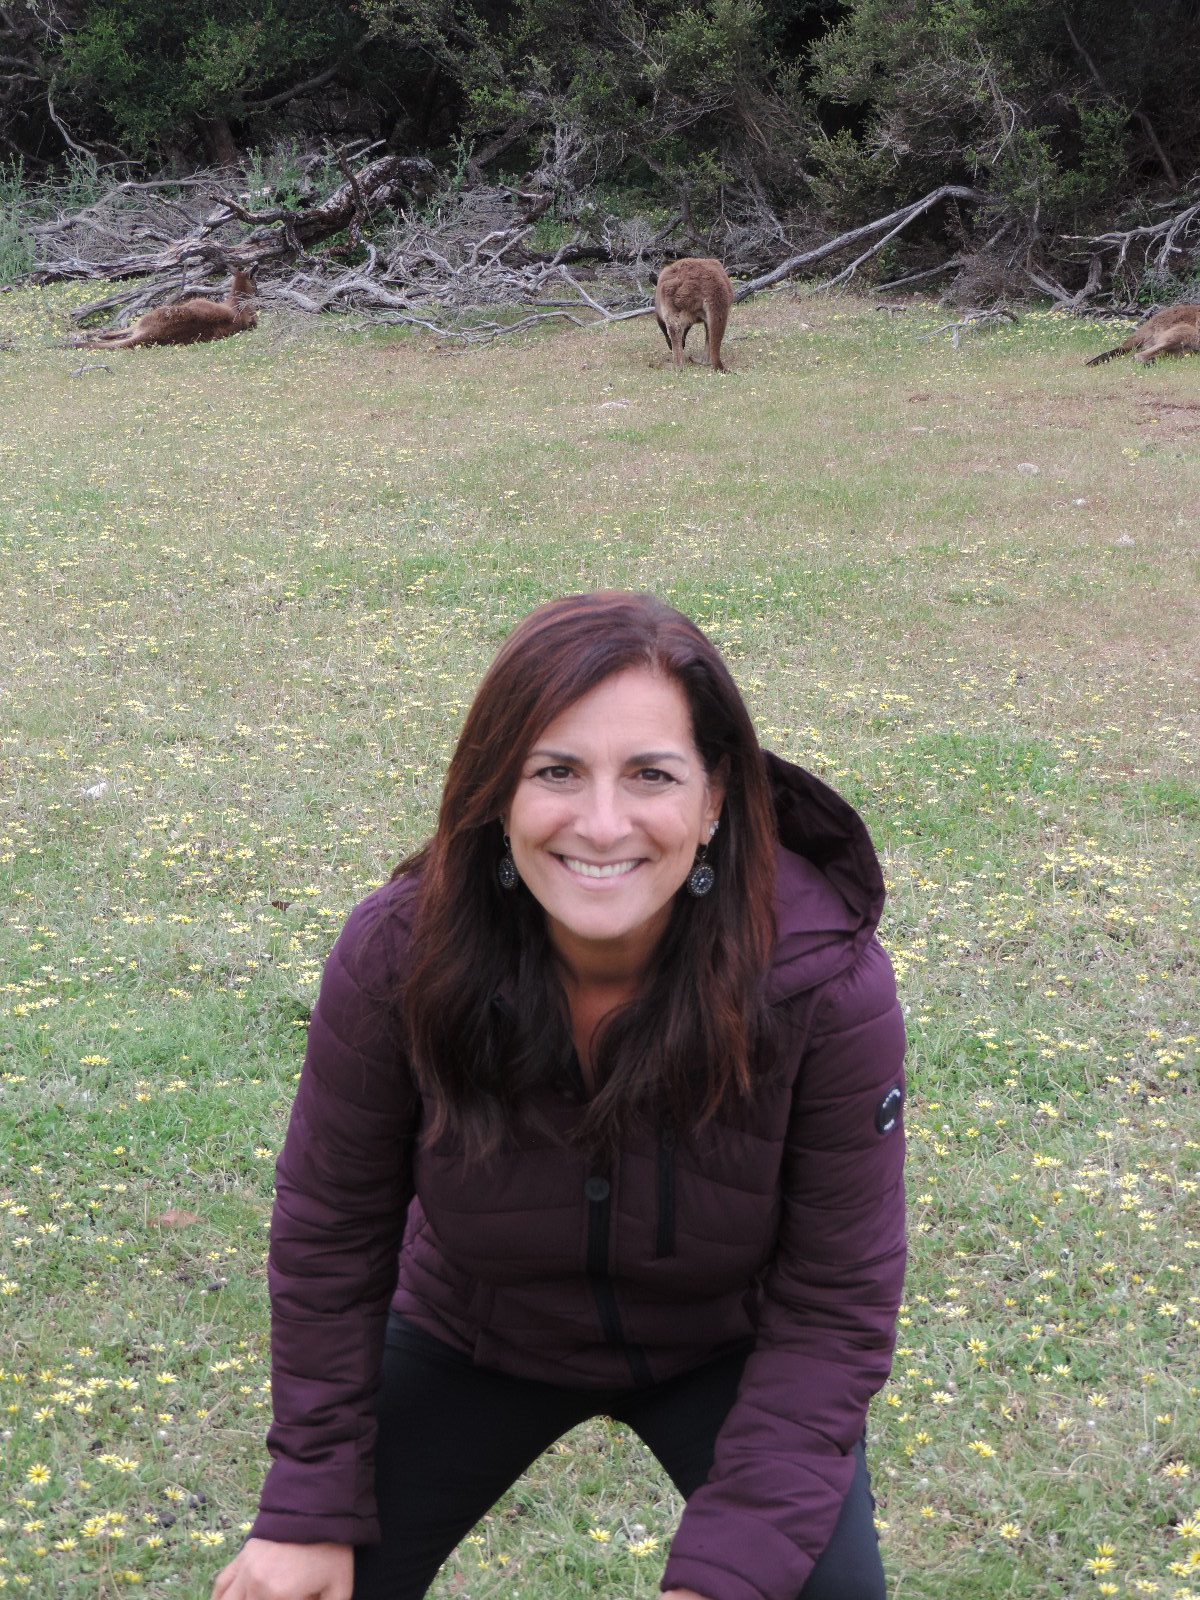 Roberta and the Kangas